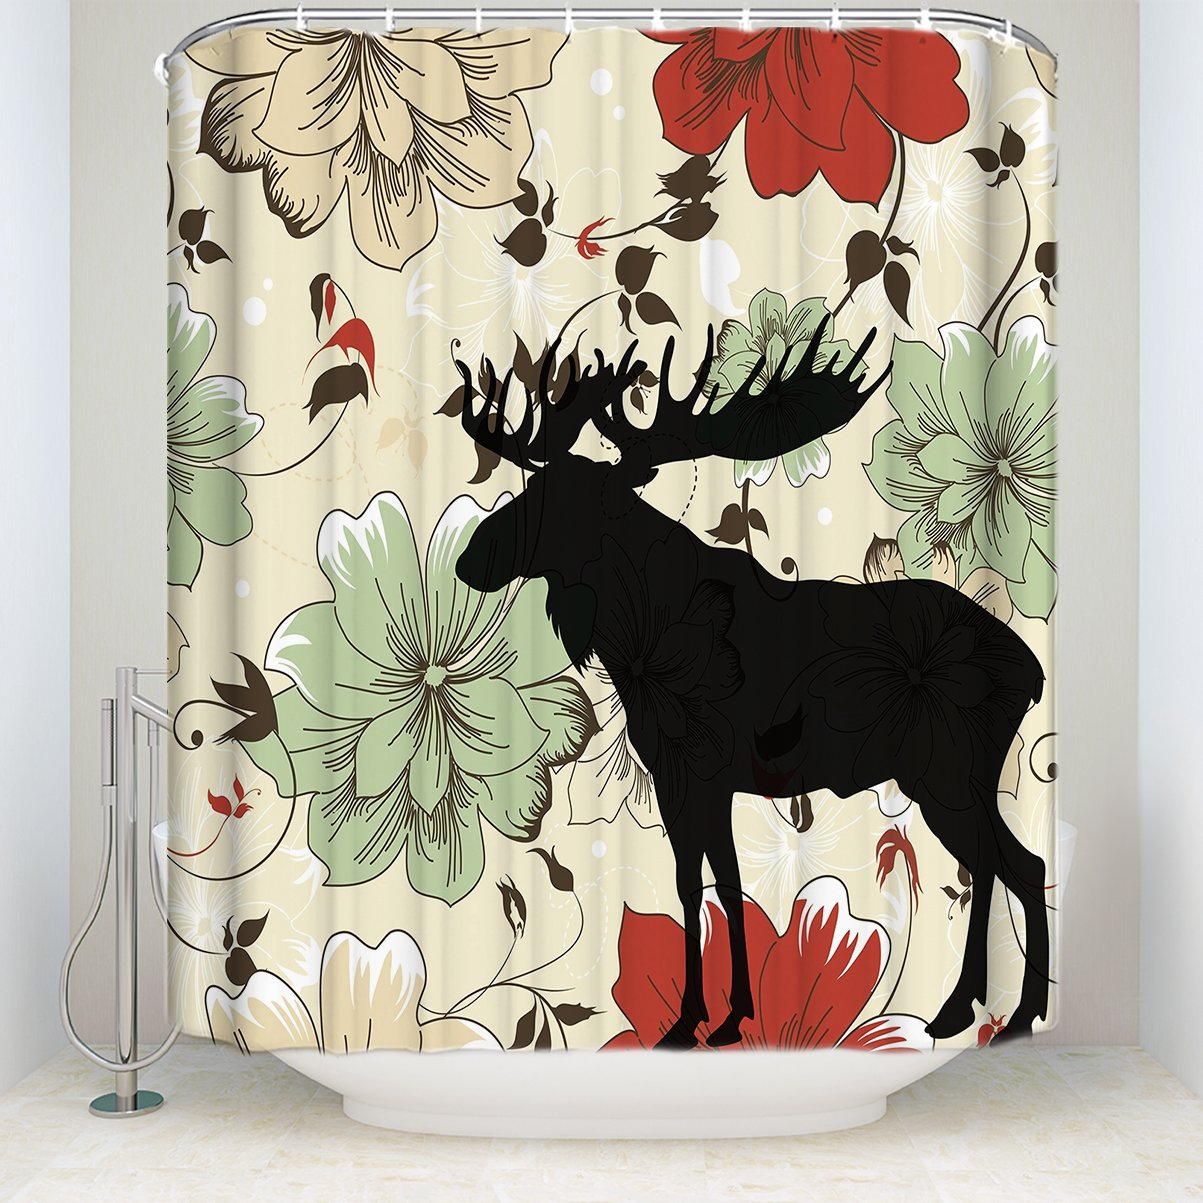 YEHO Art Gallery Shower Curtain Colorful Fresh Flowers with Elk Pattern Funny Soft Comfort Shower Curtain with Hooks 54x78 inches